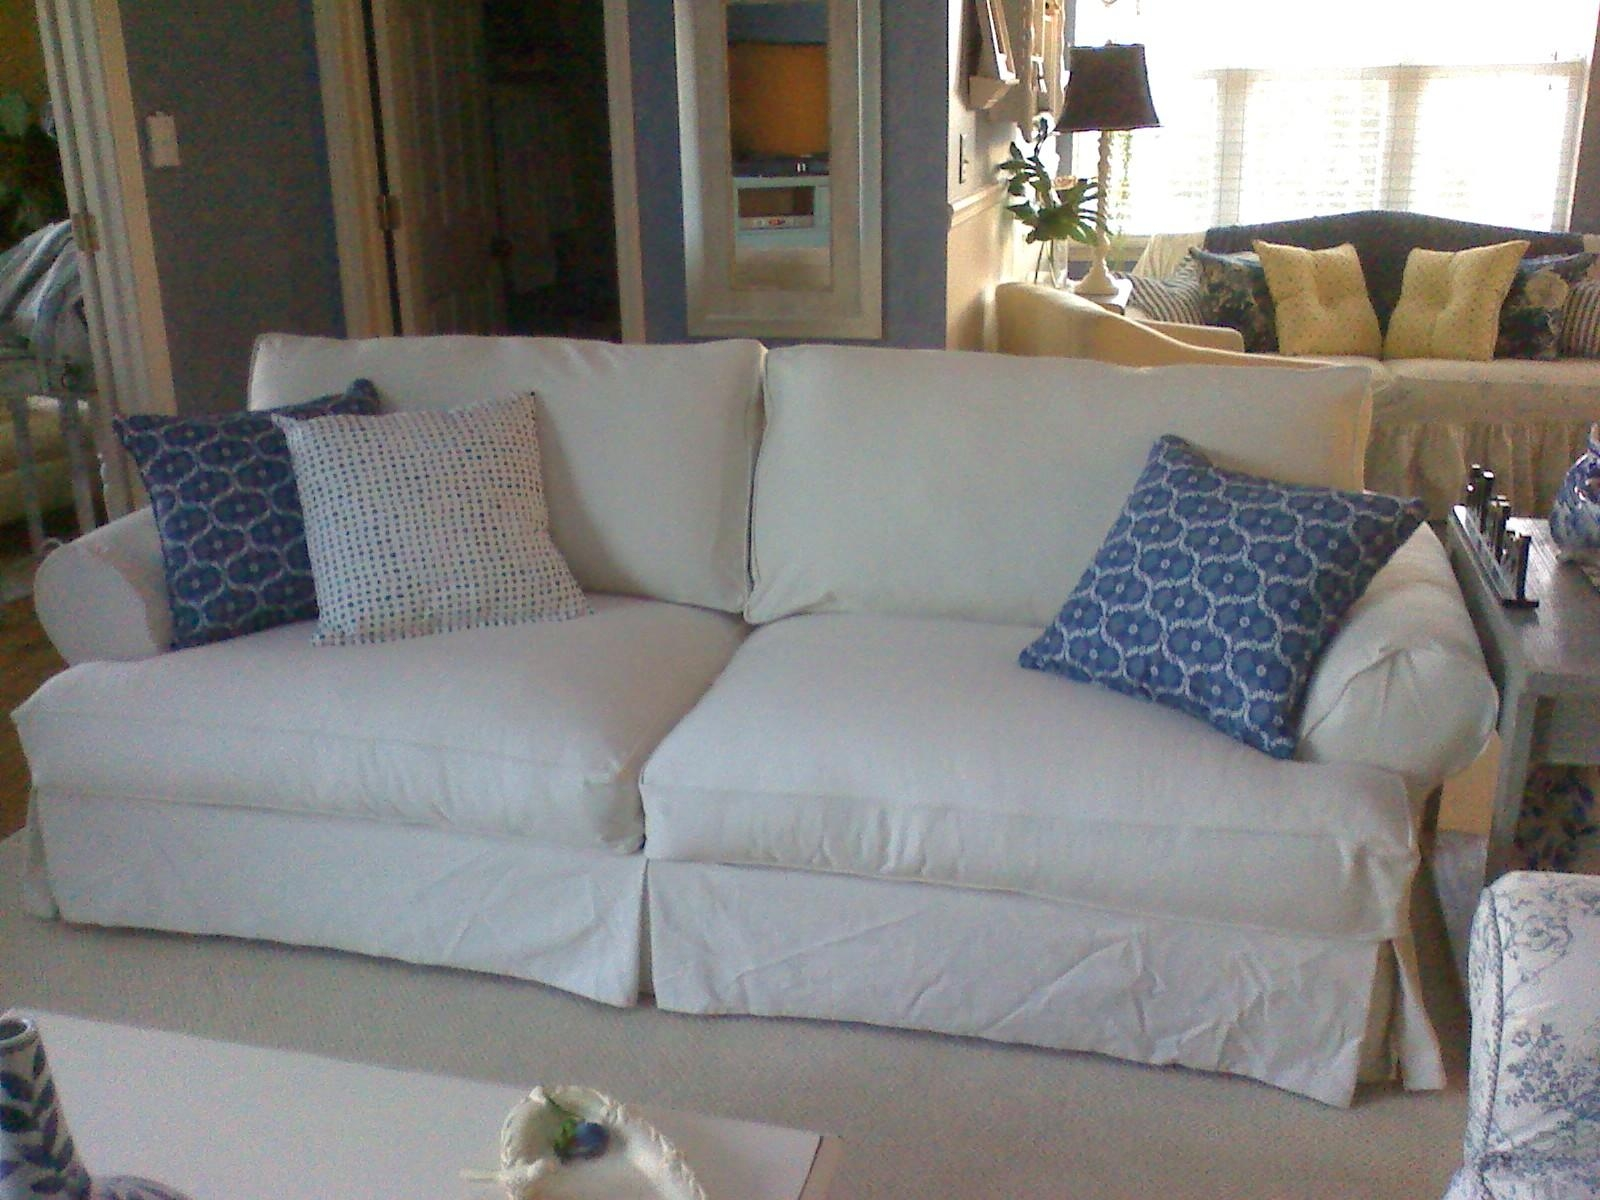 Furniture: Update Your Living Room With Best Sofa Slipcover Design With T Cushion Slipcovers For Large Sofas (View 15 of 20)